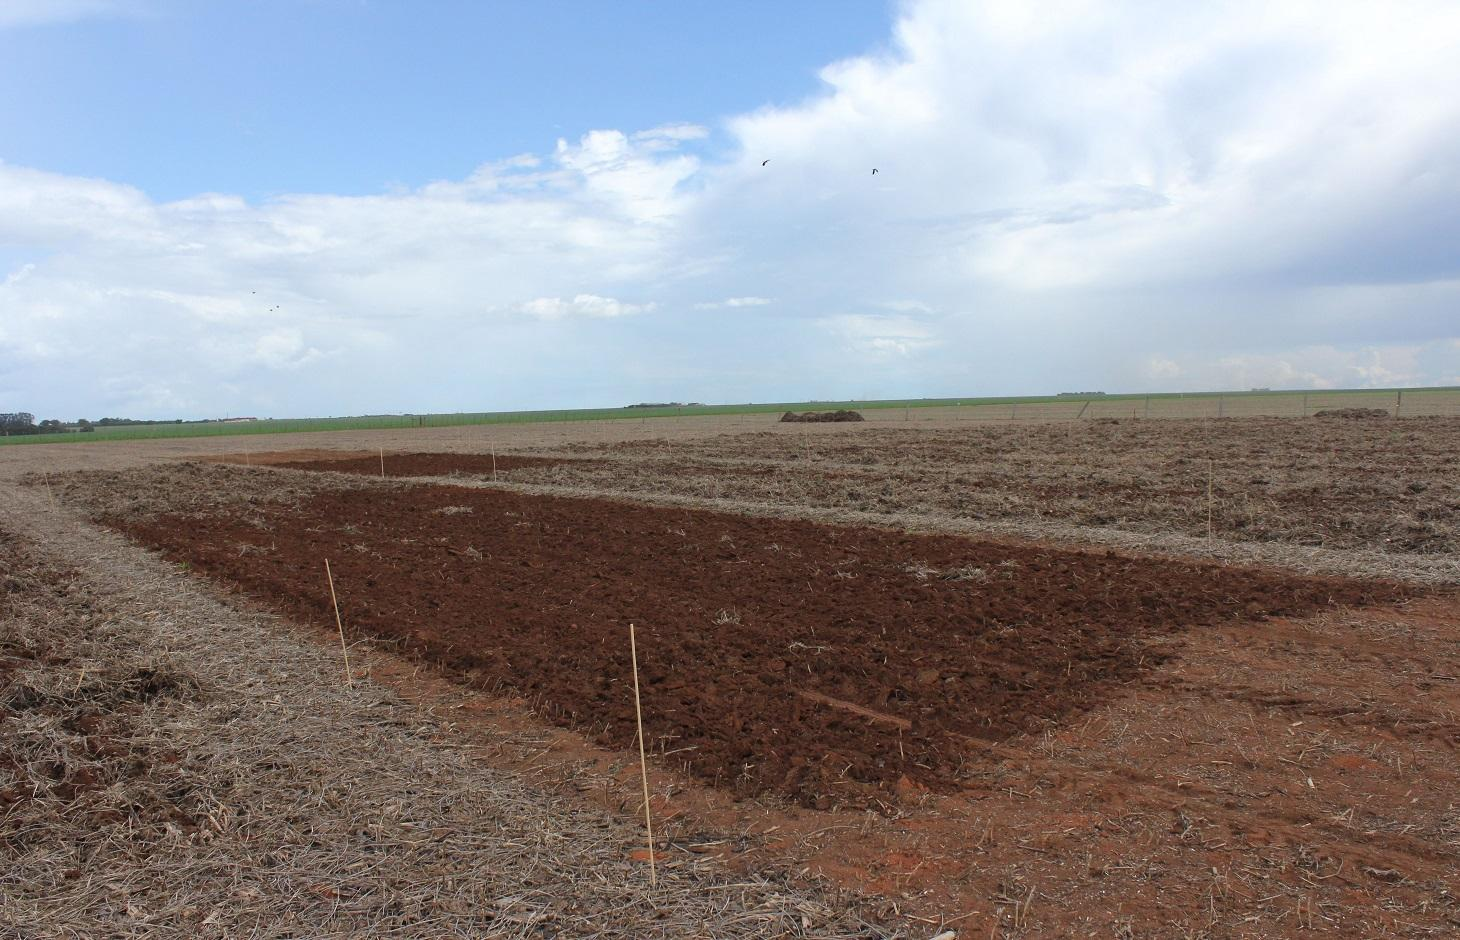 Experimental plots on a tropical agricultural soil (a ferrasol) after organic matter additions.